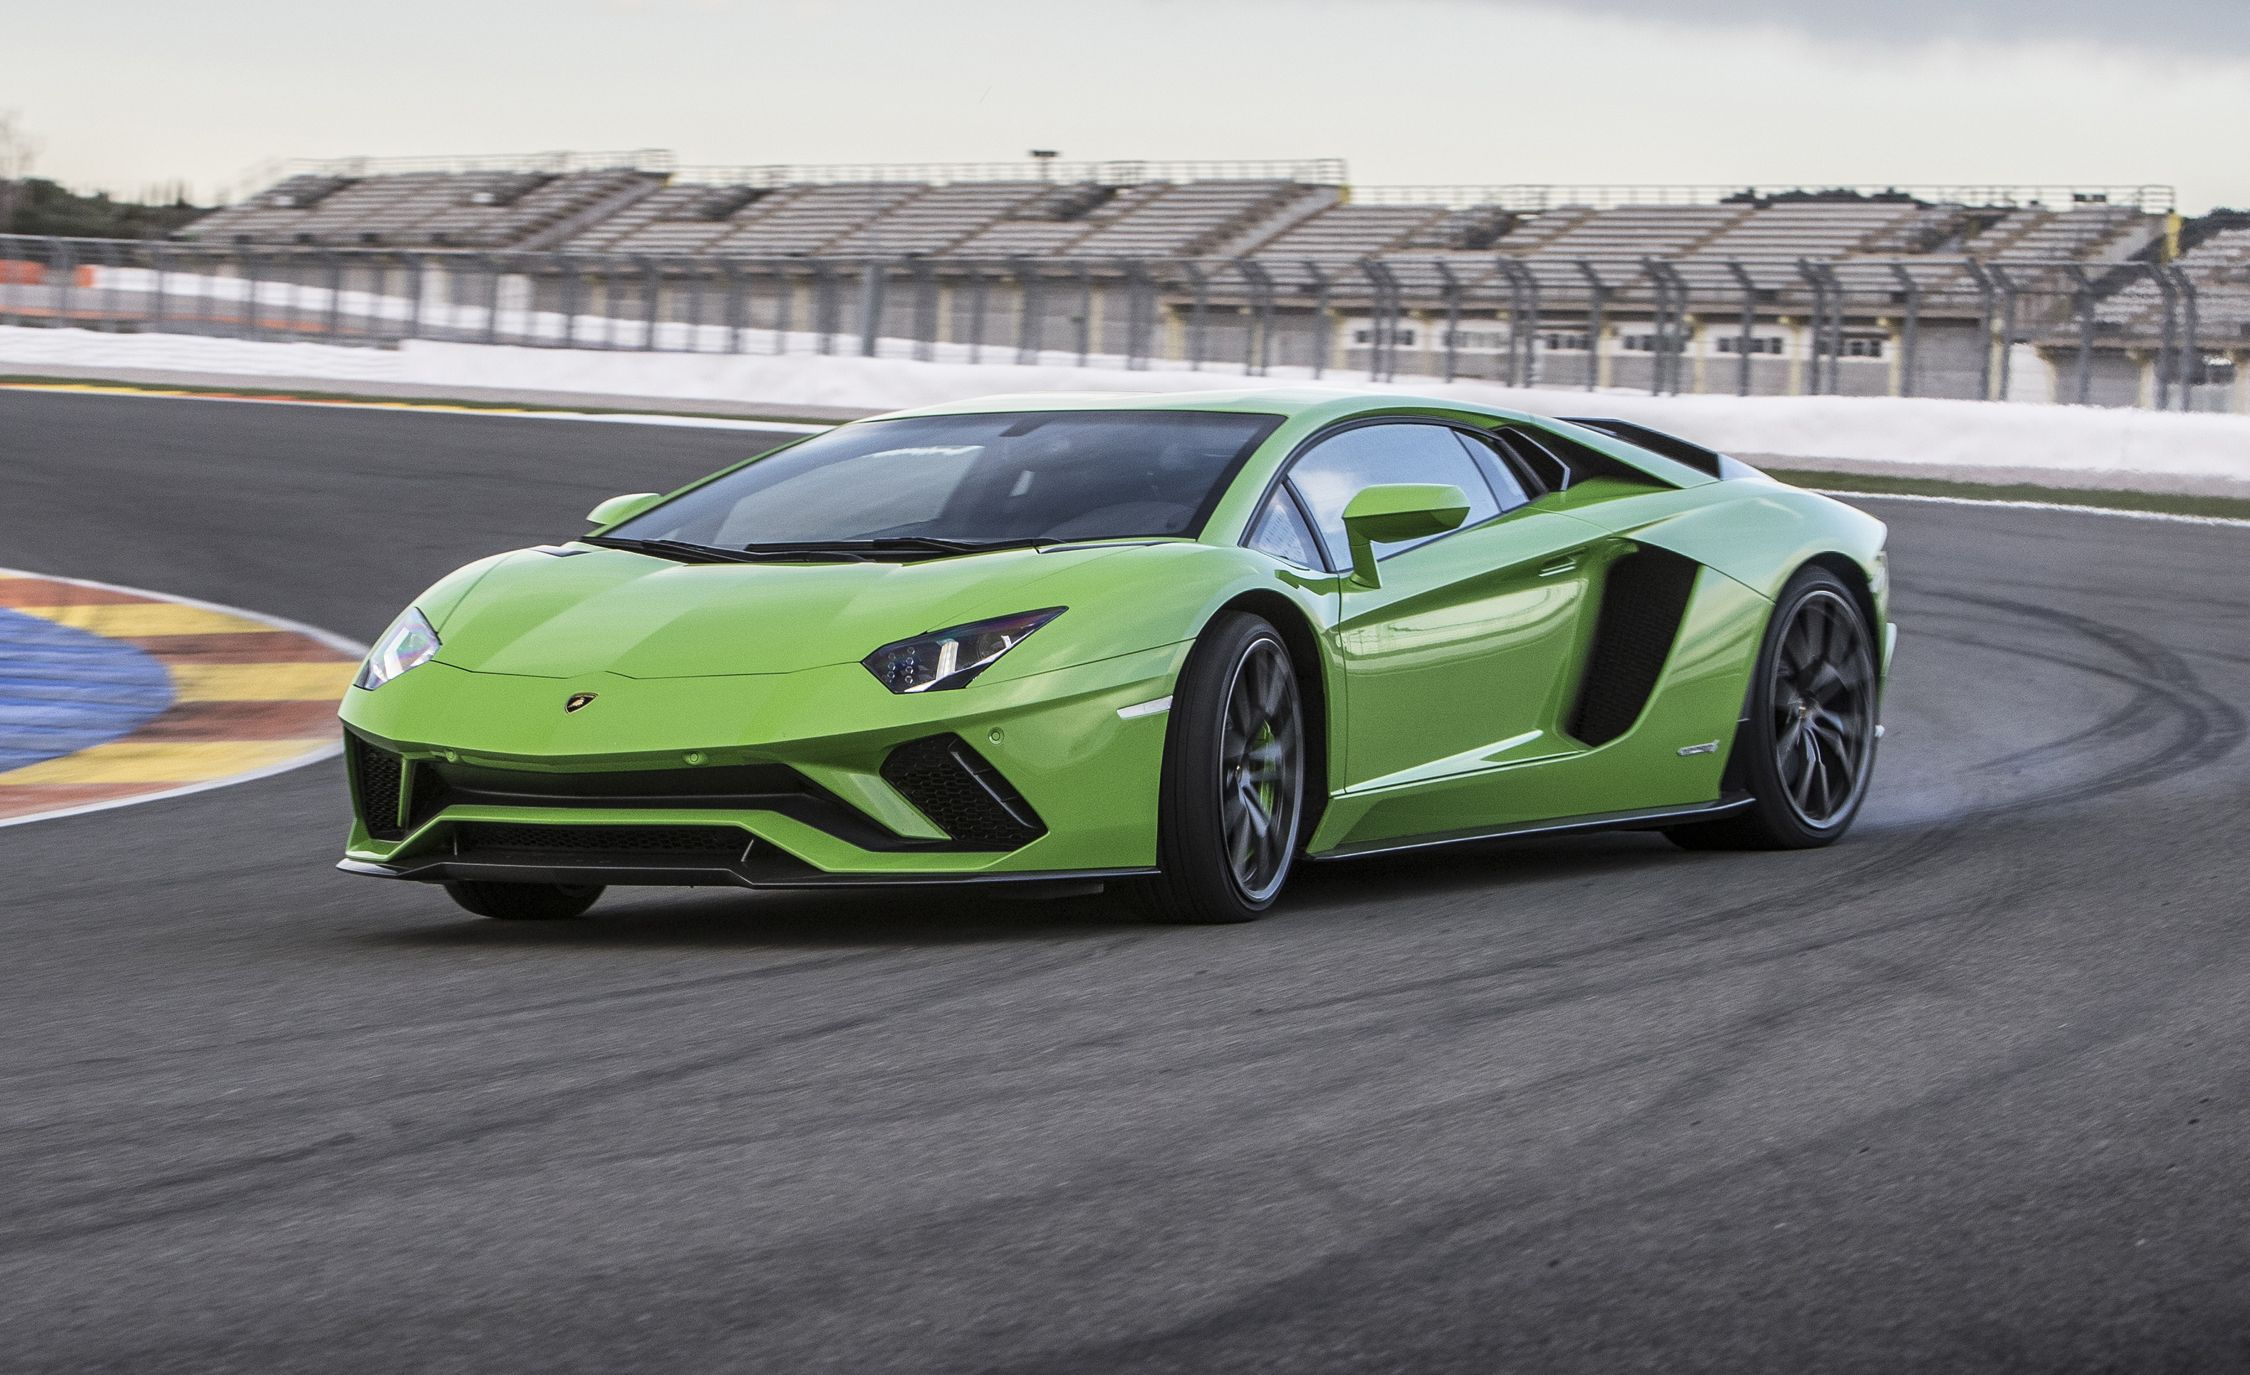 2017 Lamborghini Aventador S First Drive 8211 Review 8211 Car